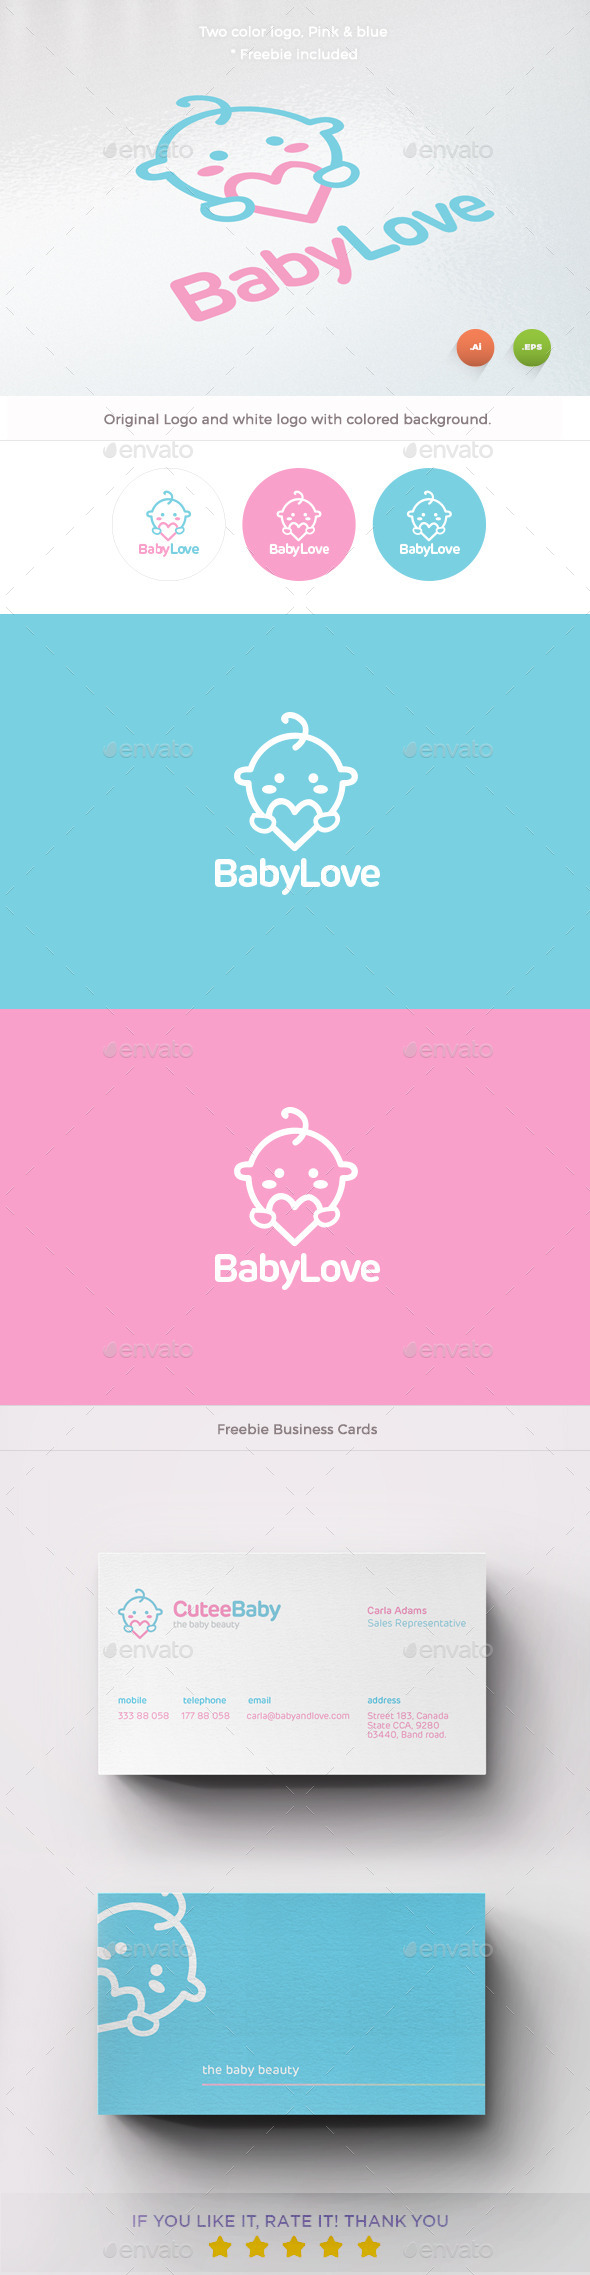 GraphicRiver Baby Love Logo 10104631